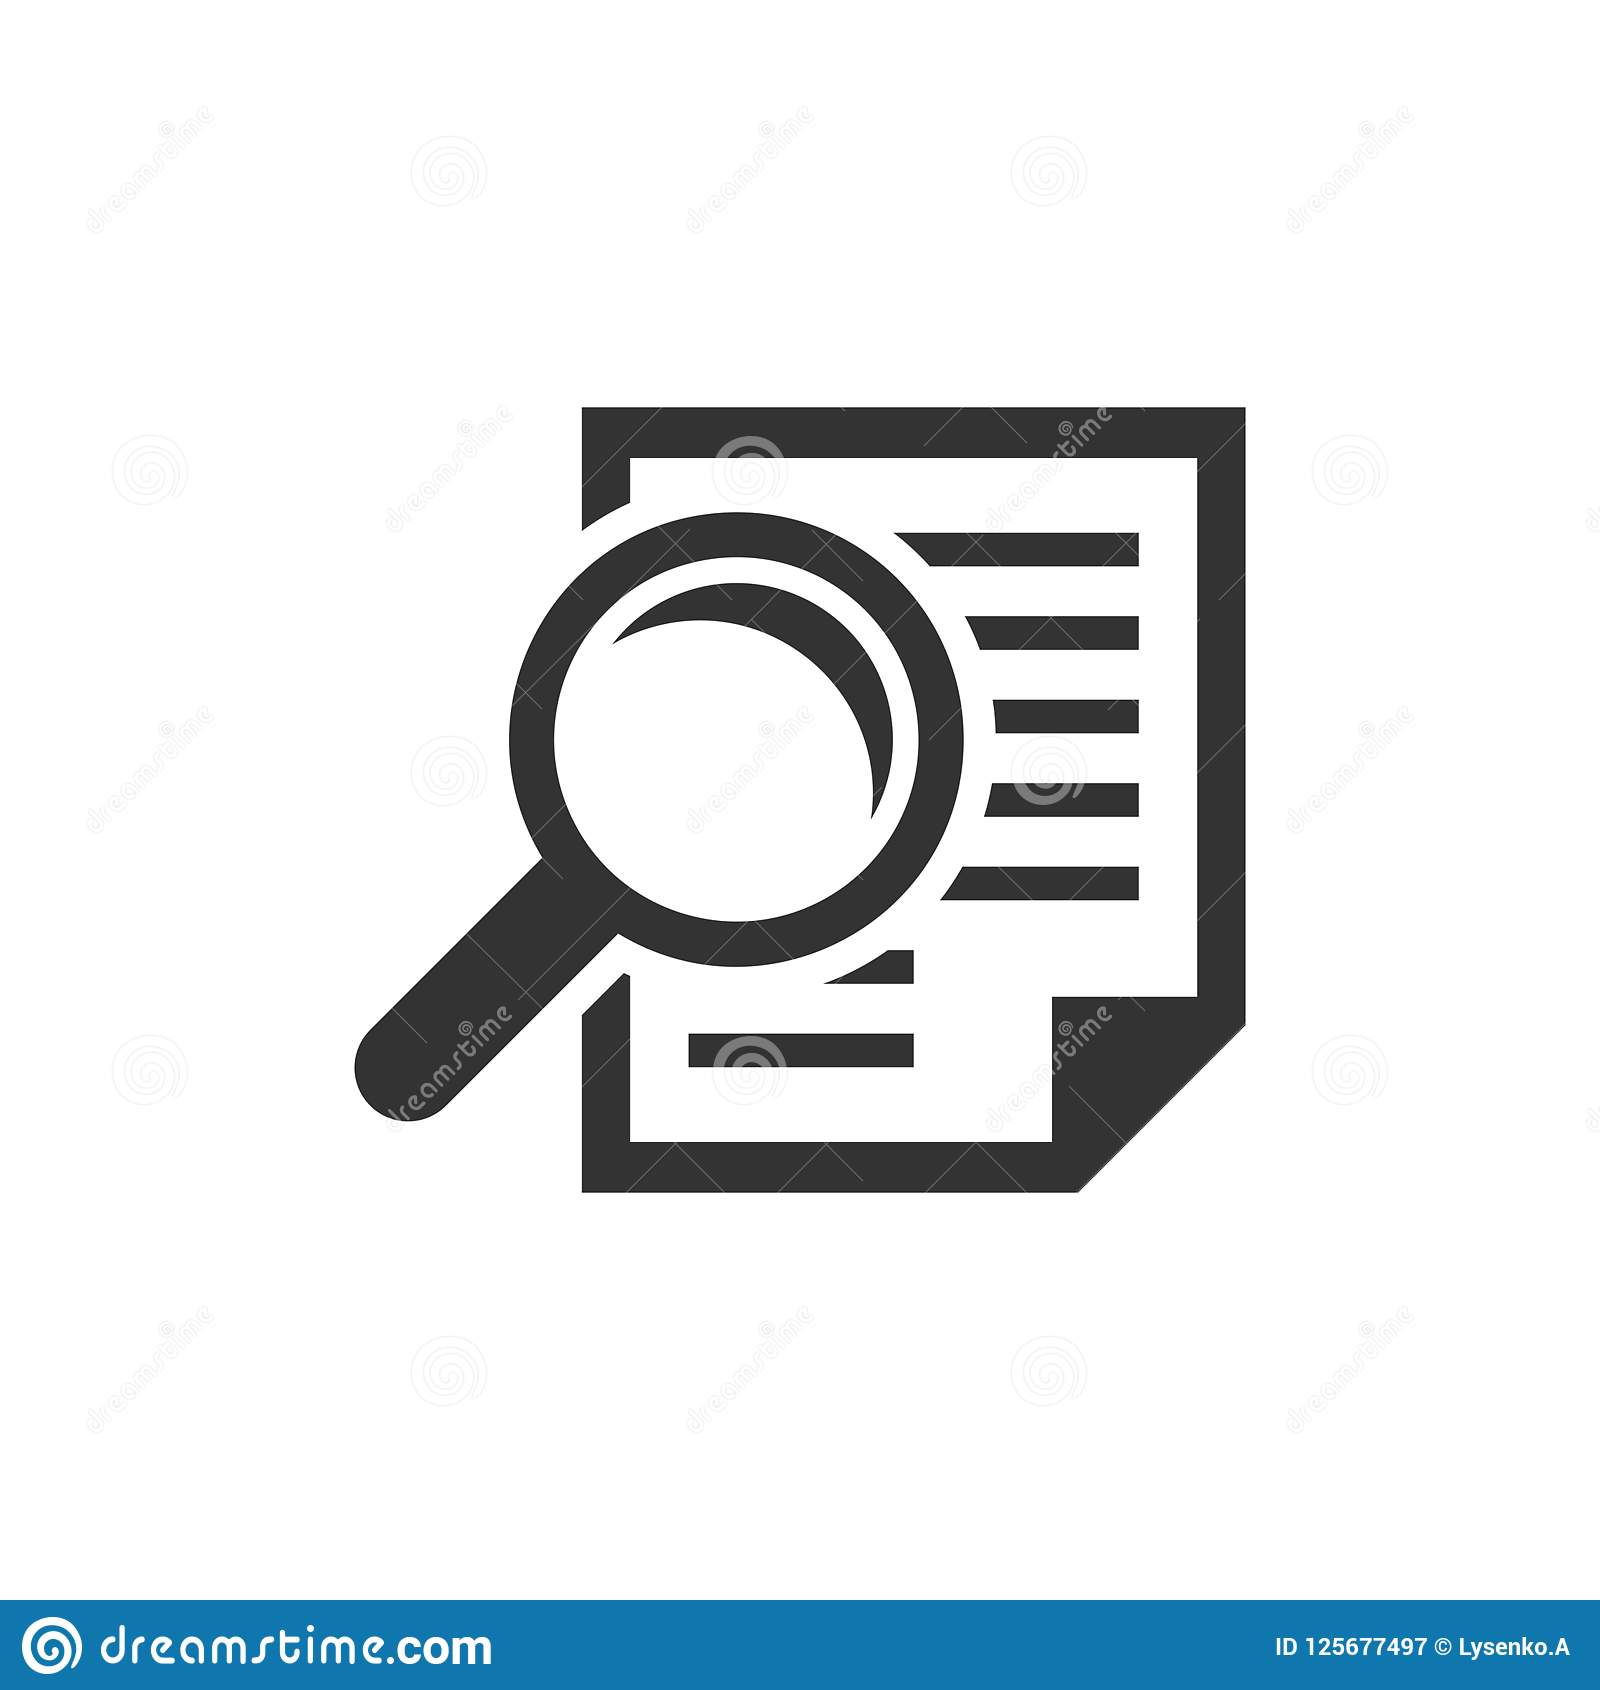 Scrutiny document plan icon in flat style. Review statement vector illustration on white isolated background. Document with